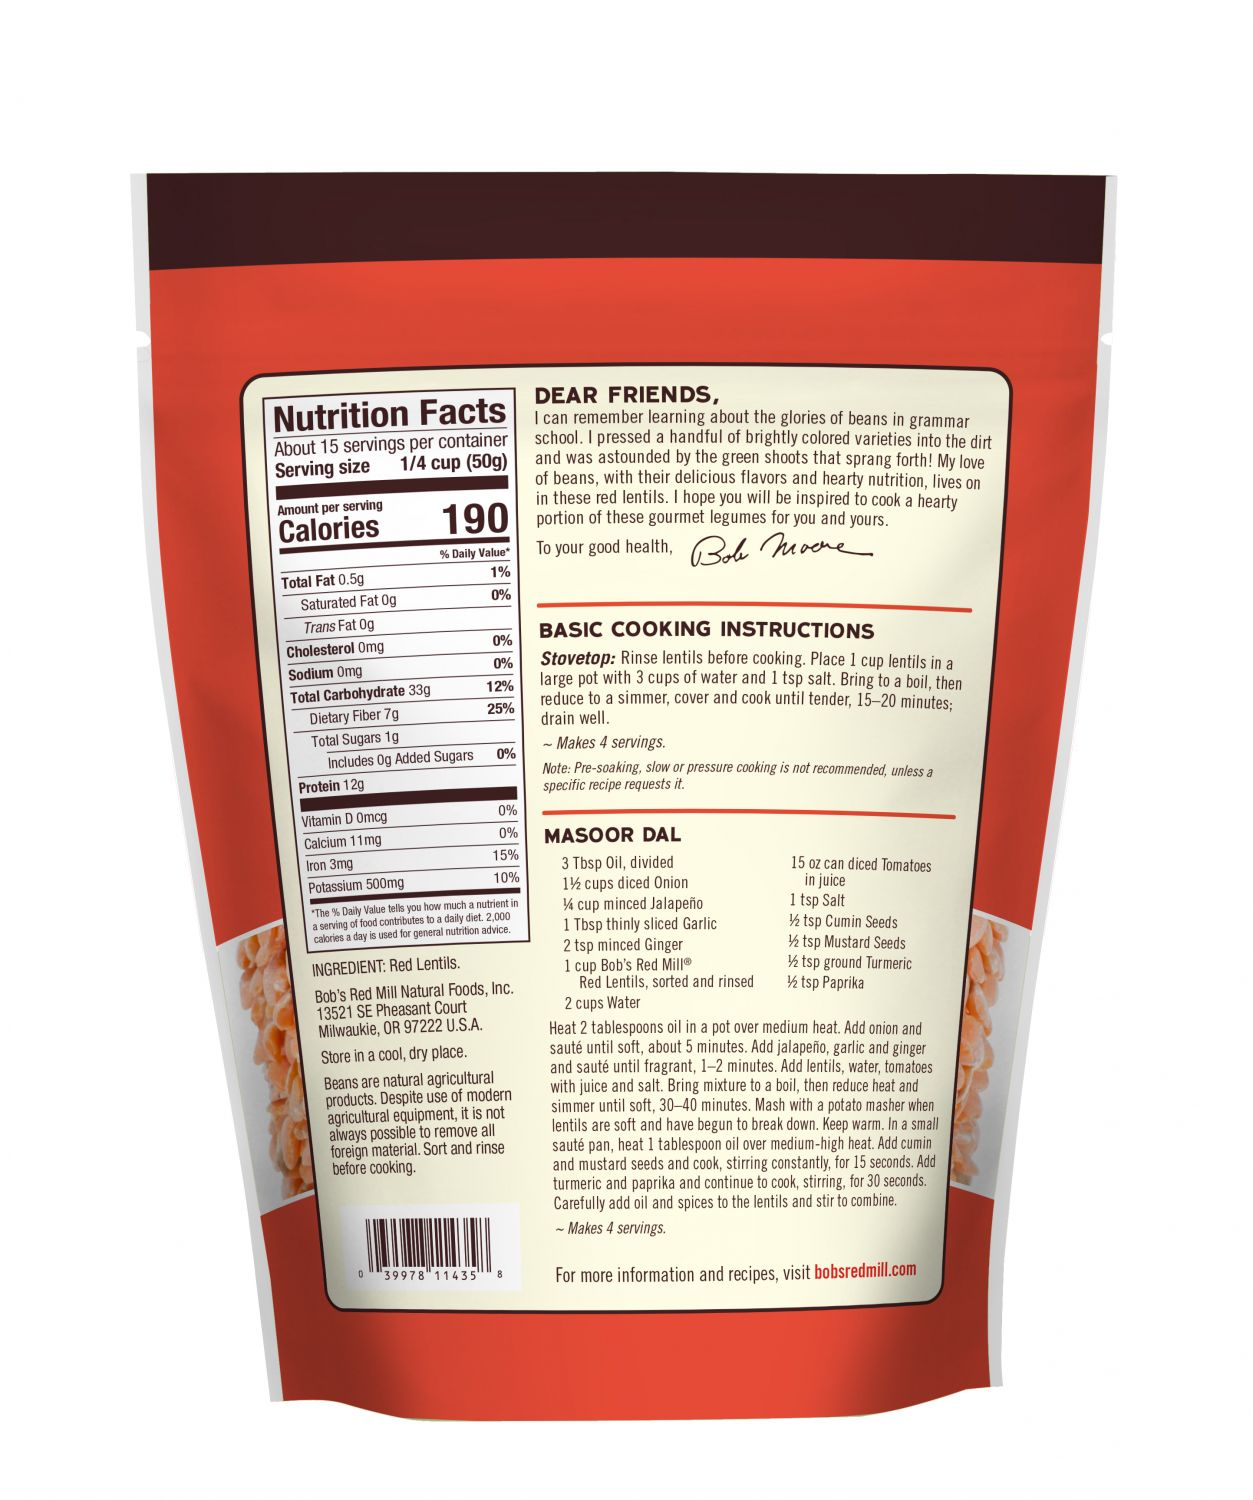 Red Lentils Bob S Red Mill Natural Foods